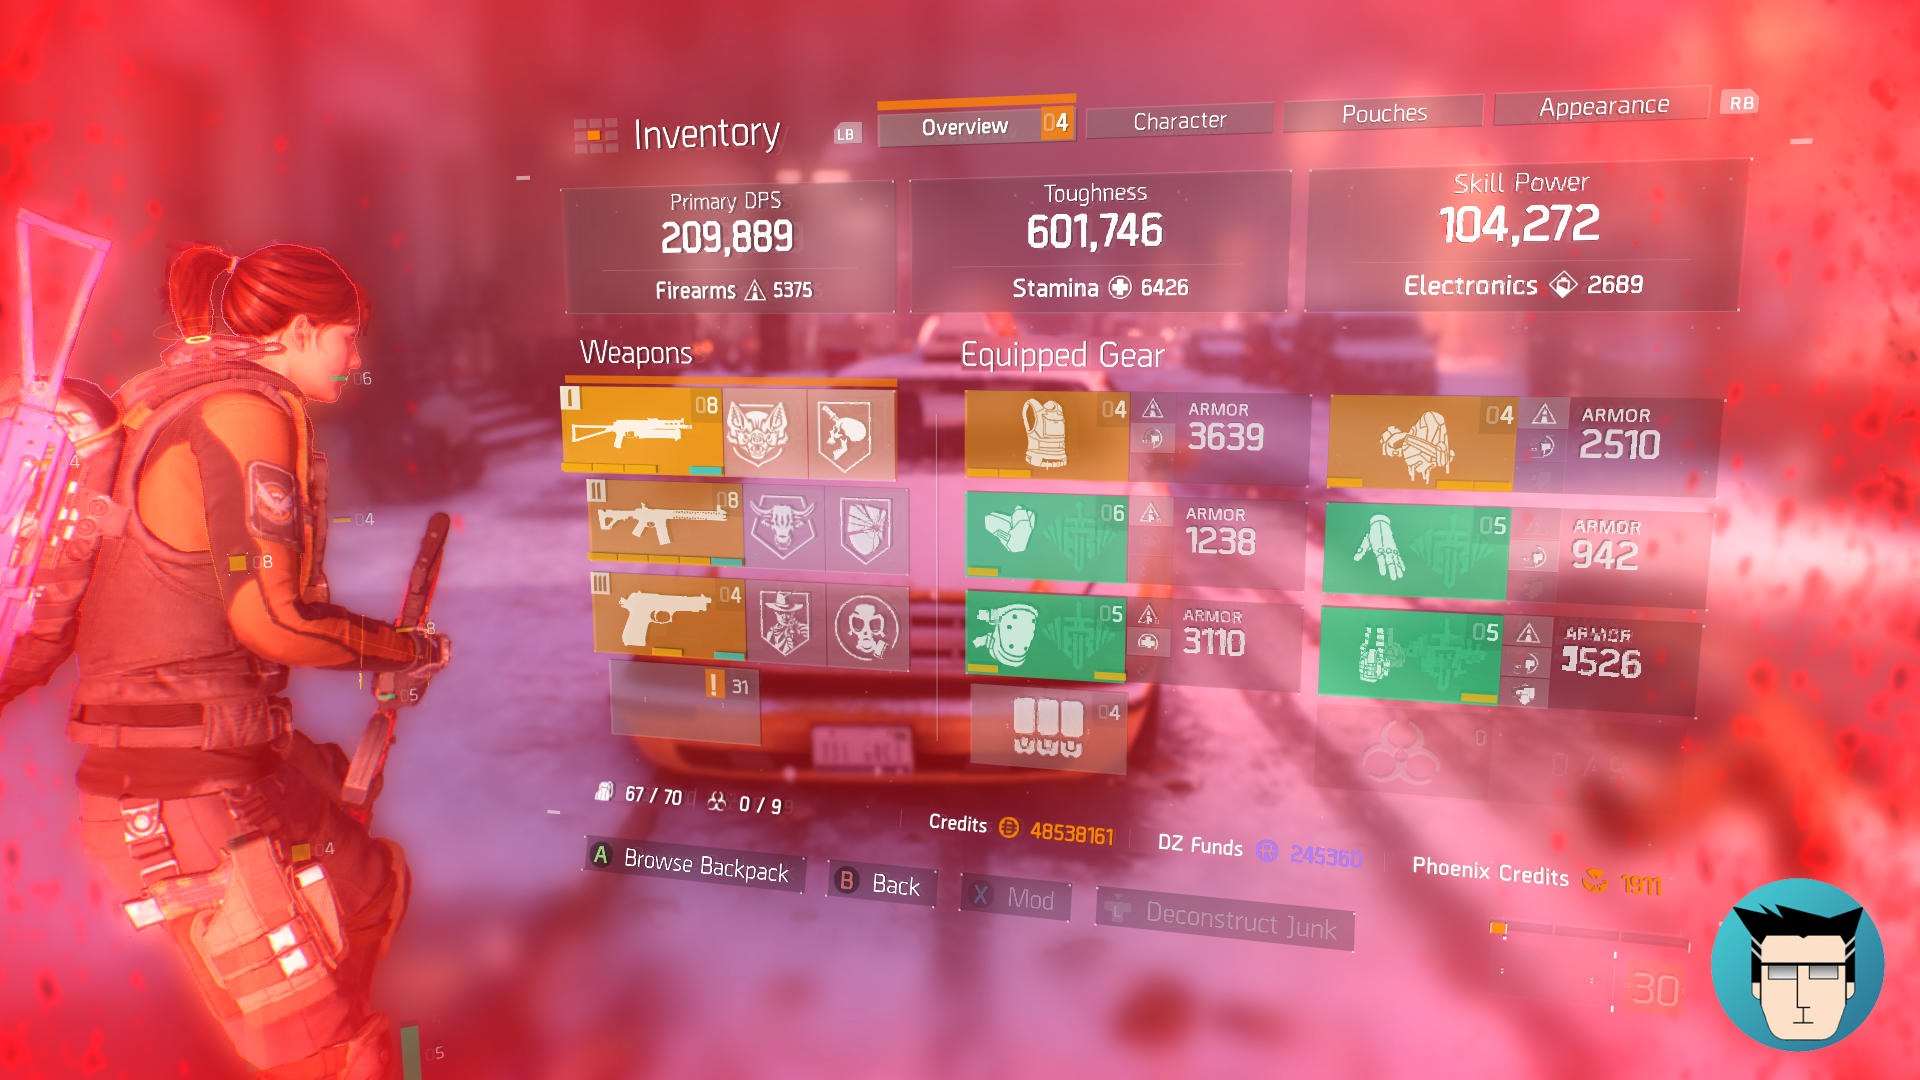 Overview | 600k Toughness, buffed with critical save